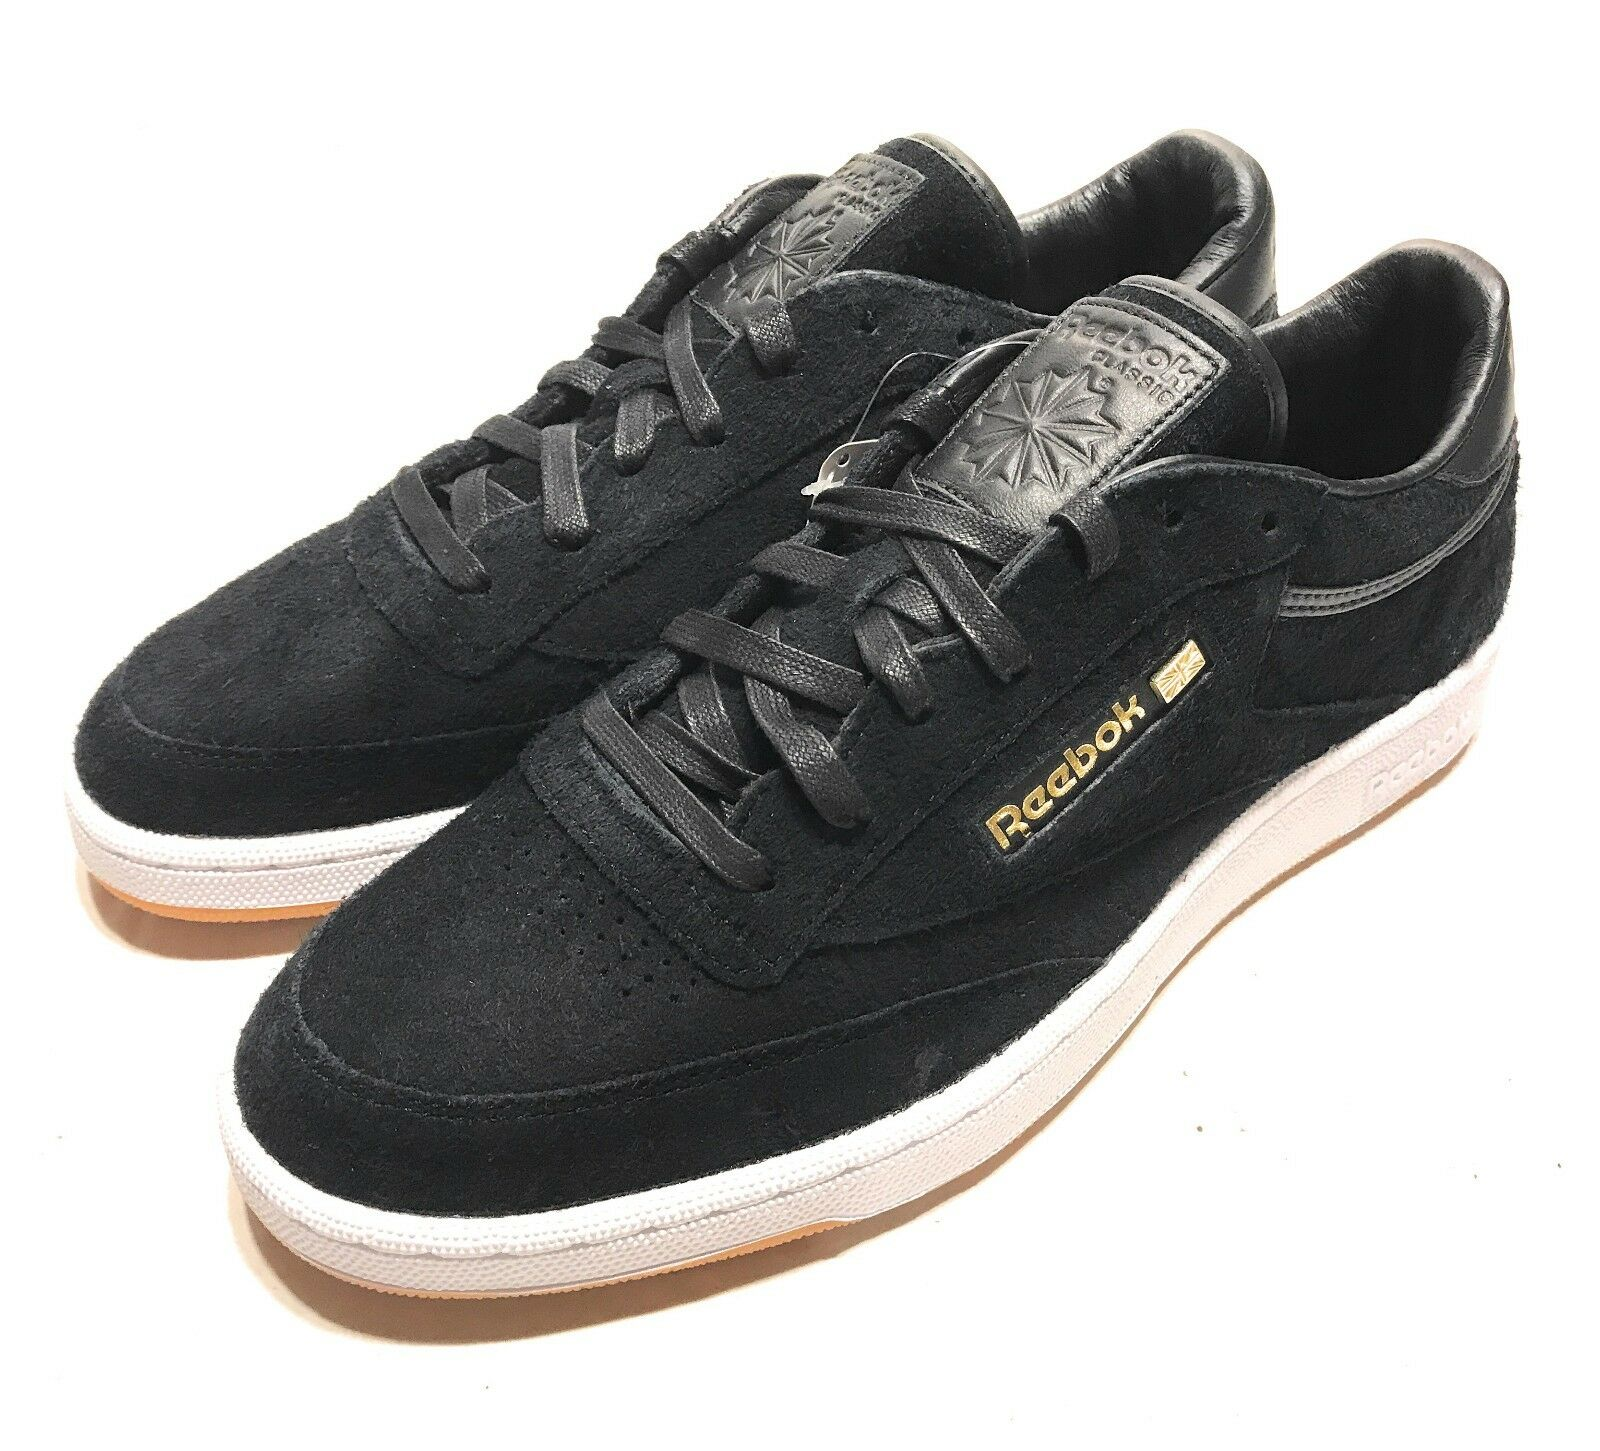 Reebok x Barneys New York Sole Series Mens Club C 85 Black Suede Shoes Size 11.5